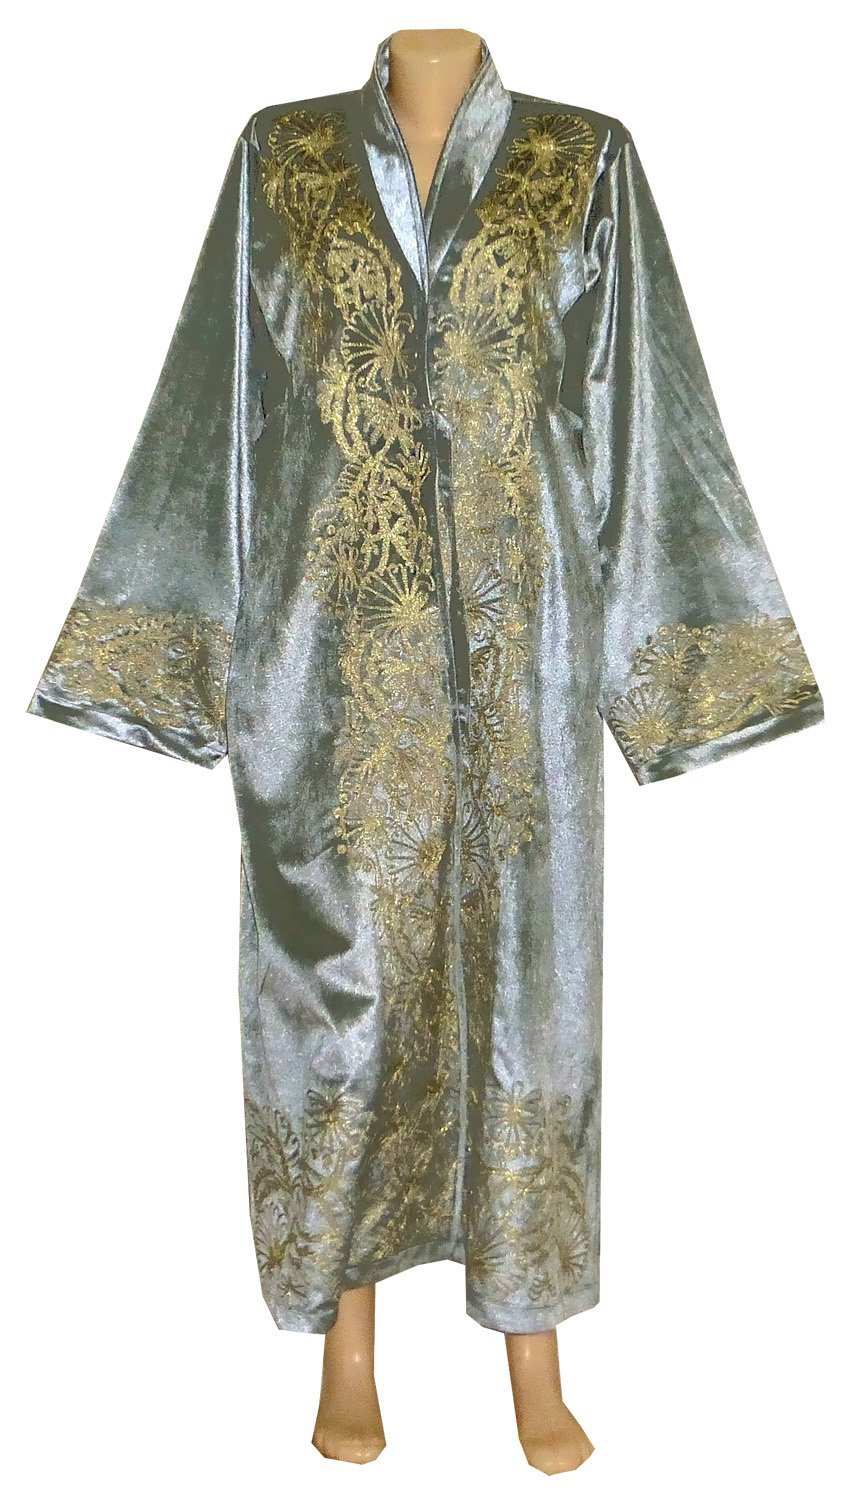 3e430bee006 Amazon.com: UZBEK TRADITIONAL BUKHARA ROBE JACKET COAT UNISEX GOLD SILK  EMBROIDERED A10539: Handmade